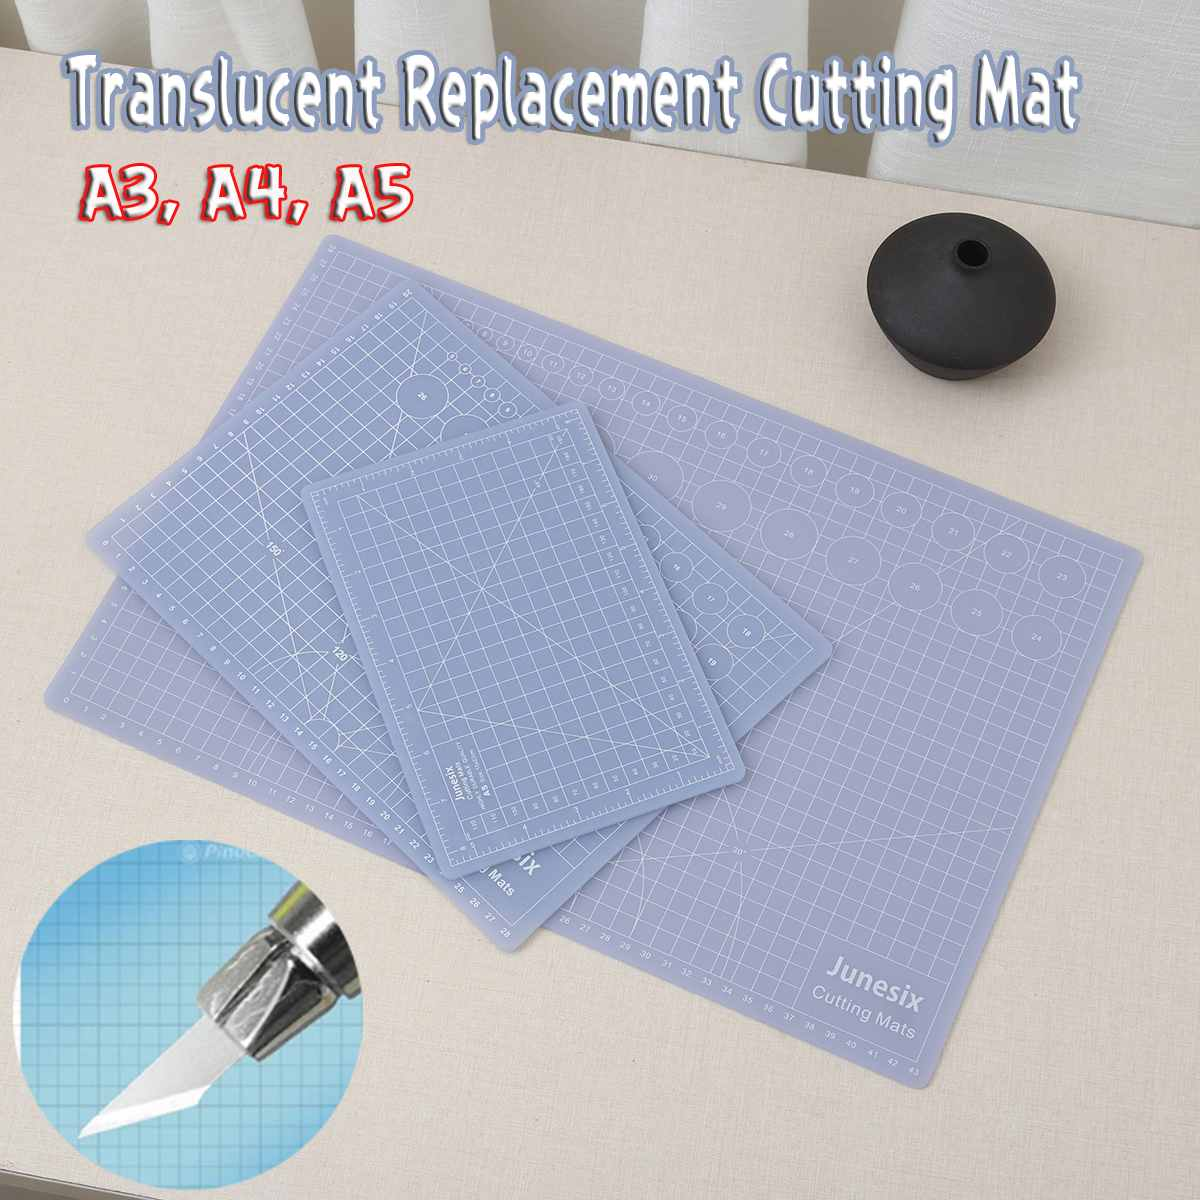 Composite PVC A3/A4/A5 Replacement Cutting Mat Transparent Mat With Measuring Grid For Silhouette Cameo Plotter Machine